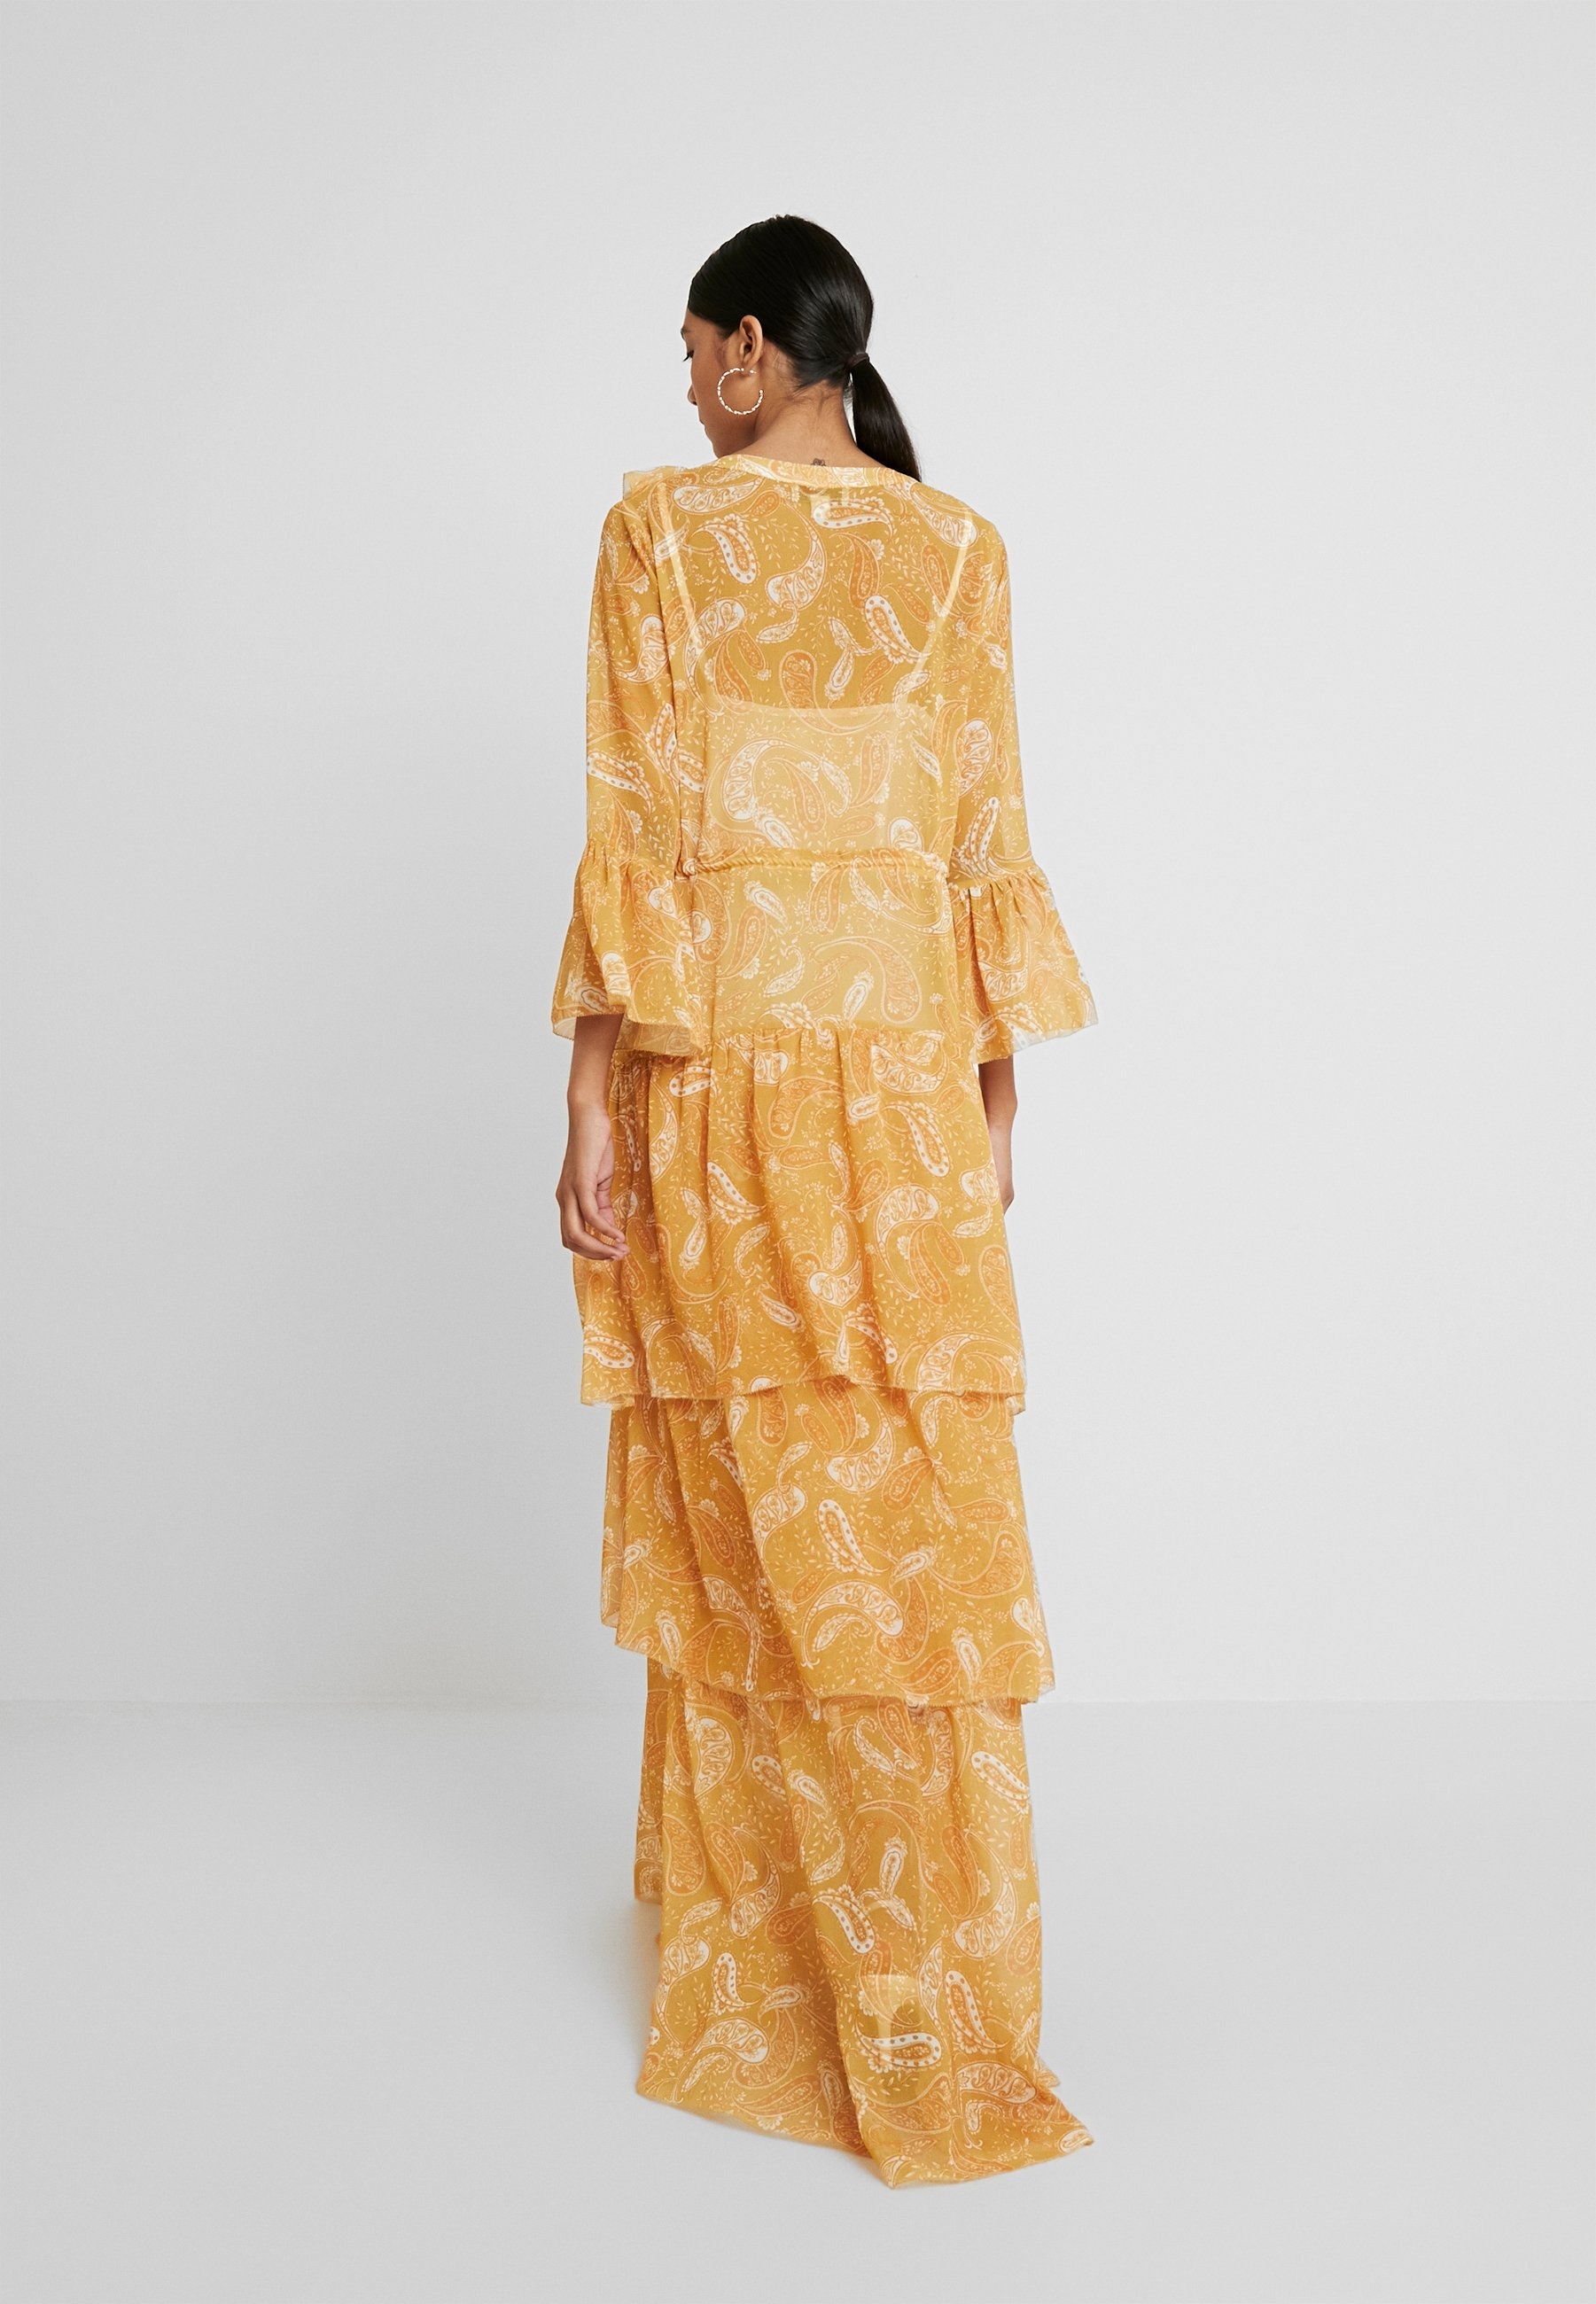 We Are Kindred Amalfi Dress - Maxi-jurk Sunflower EvgpU5f